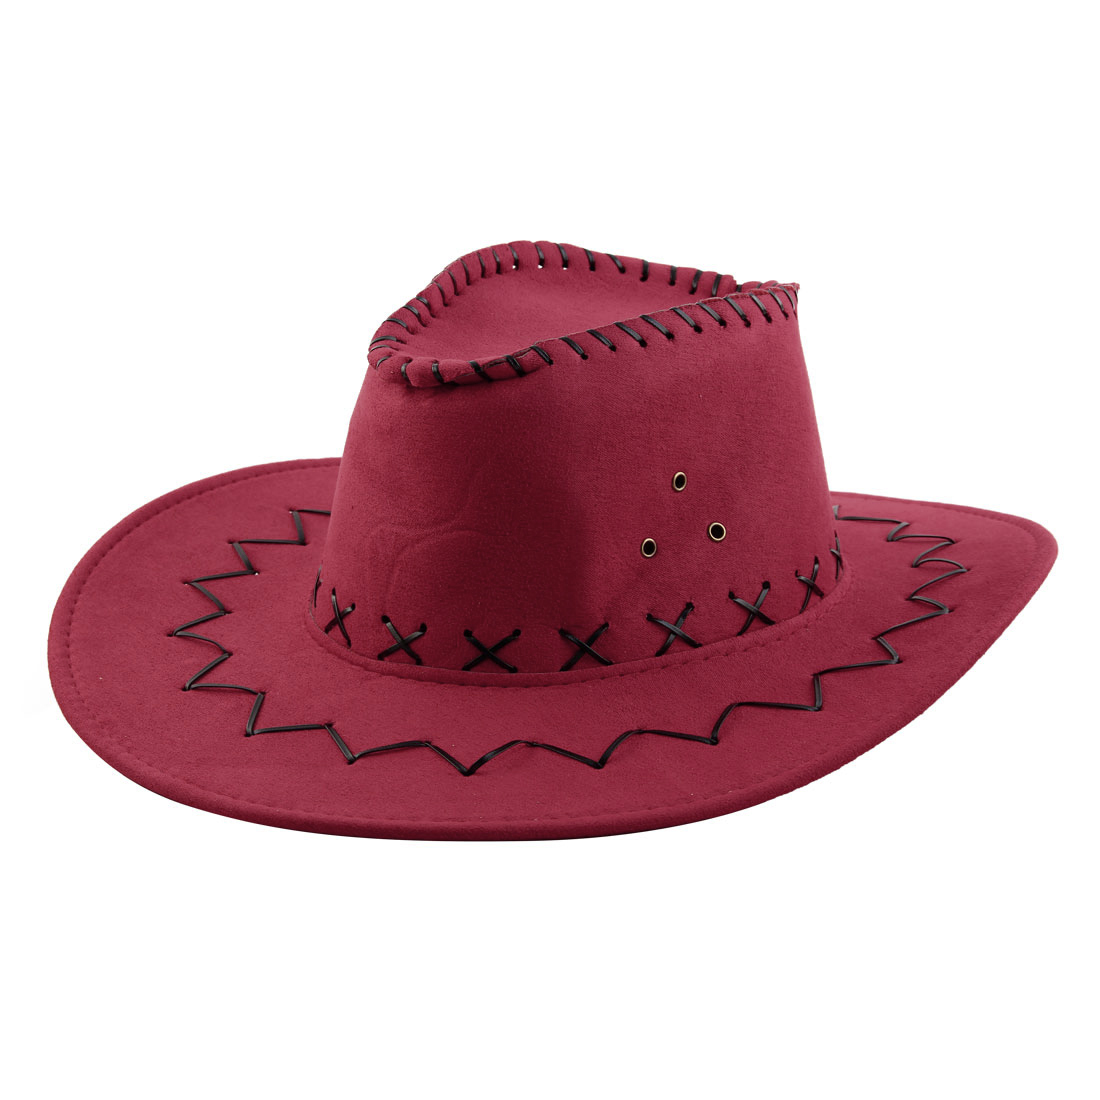 Faux Suede Adjustable Neck Strap Wide Brim Western Style Sunhat Cowboy Hat Red